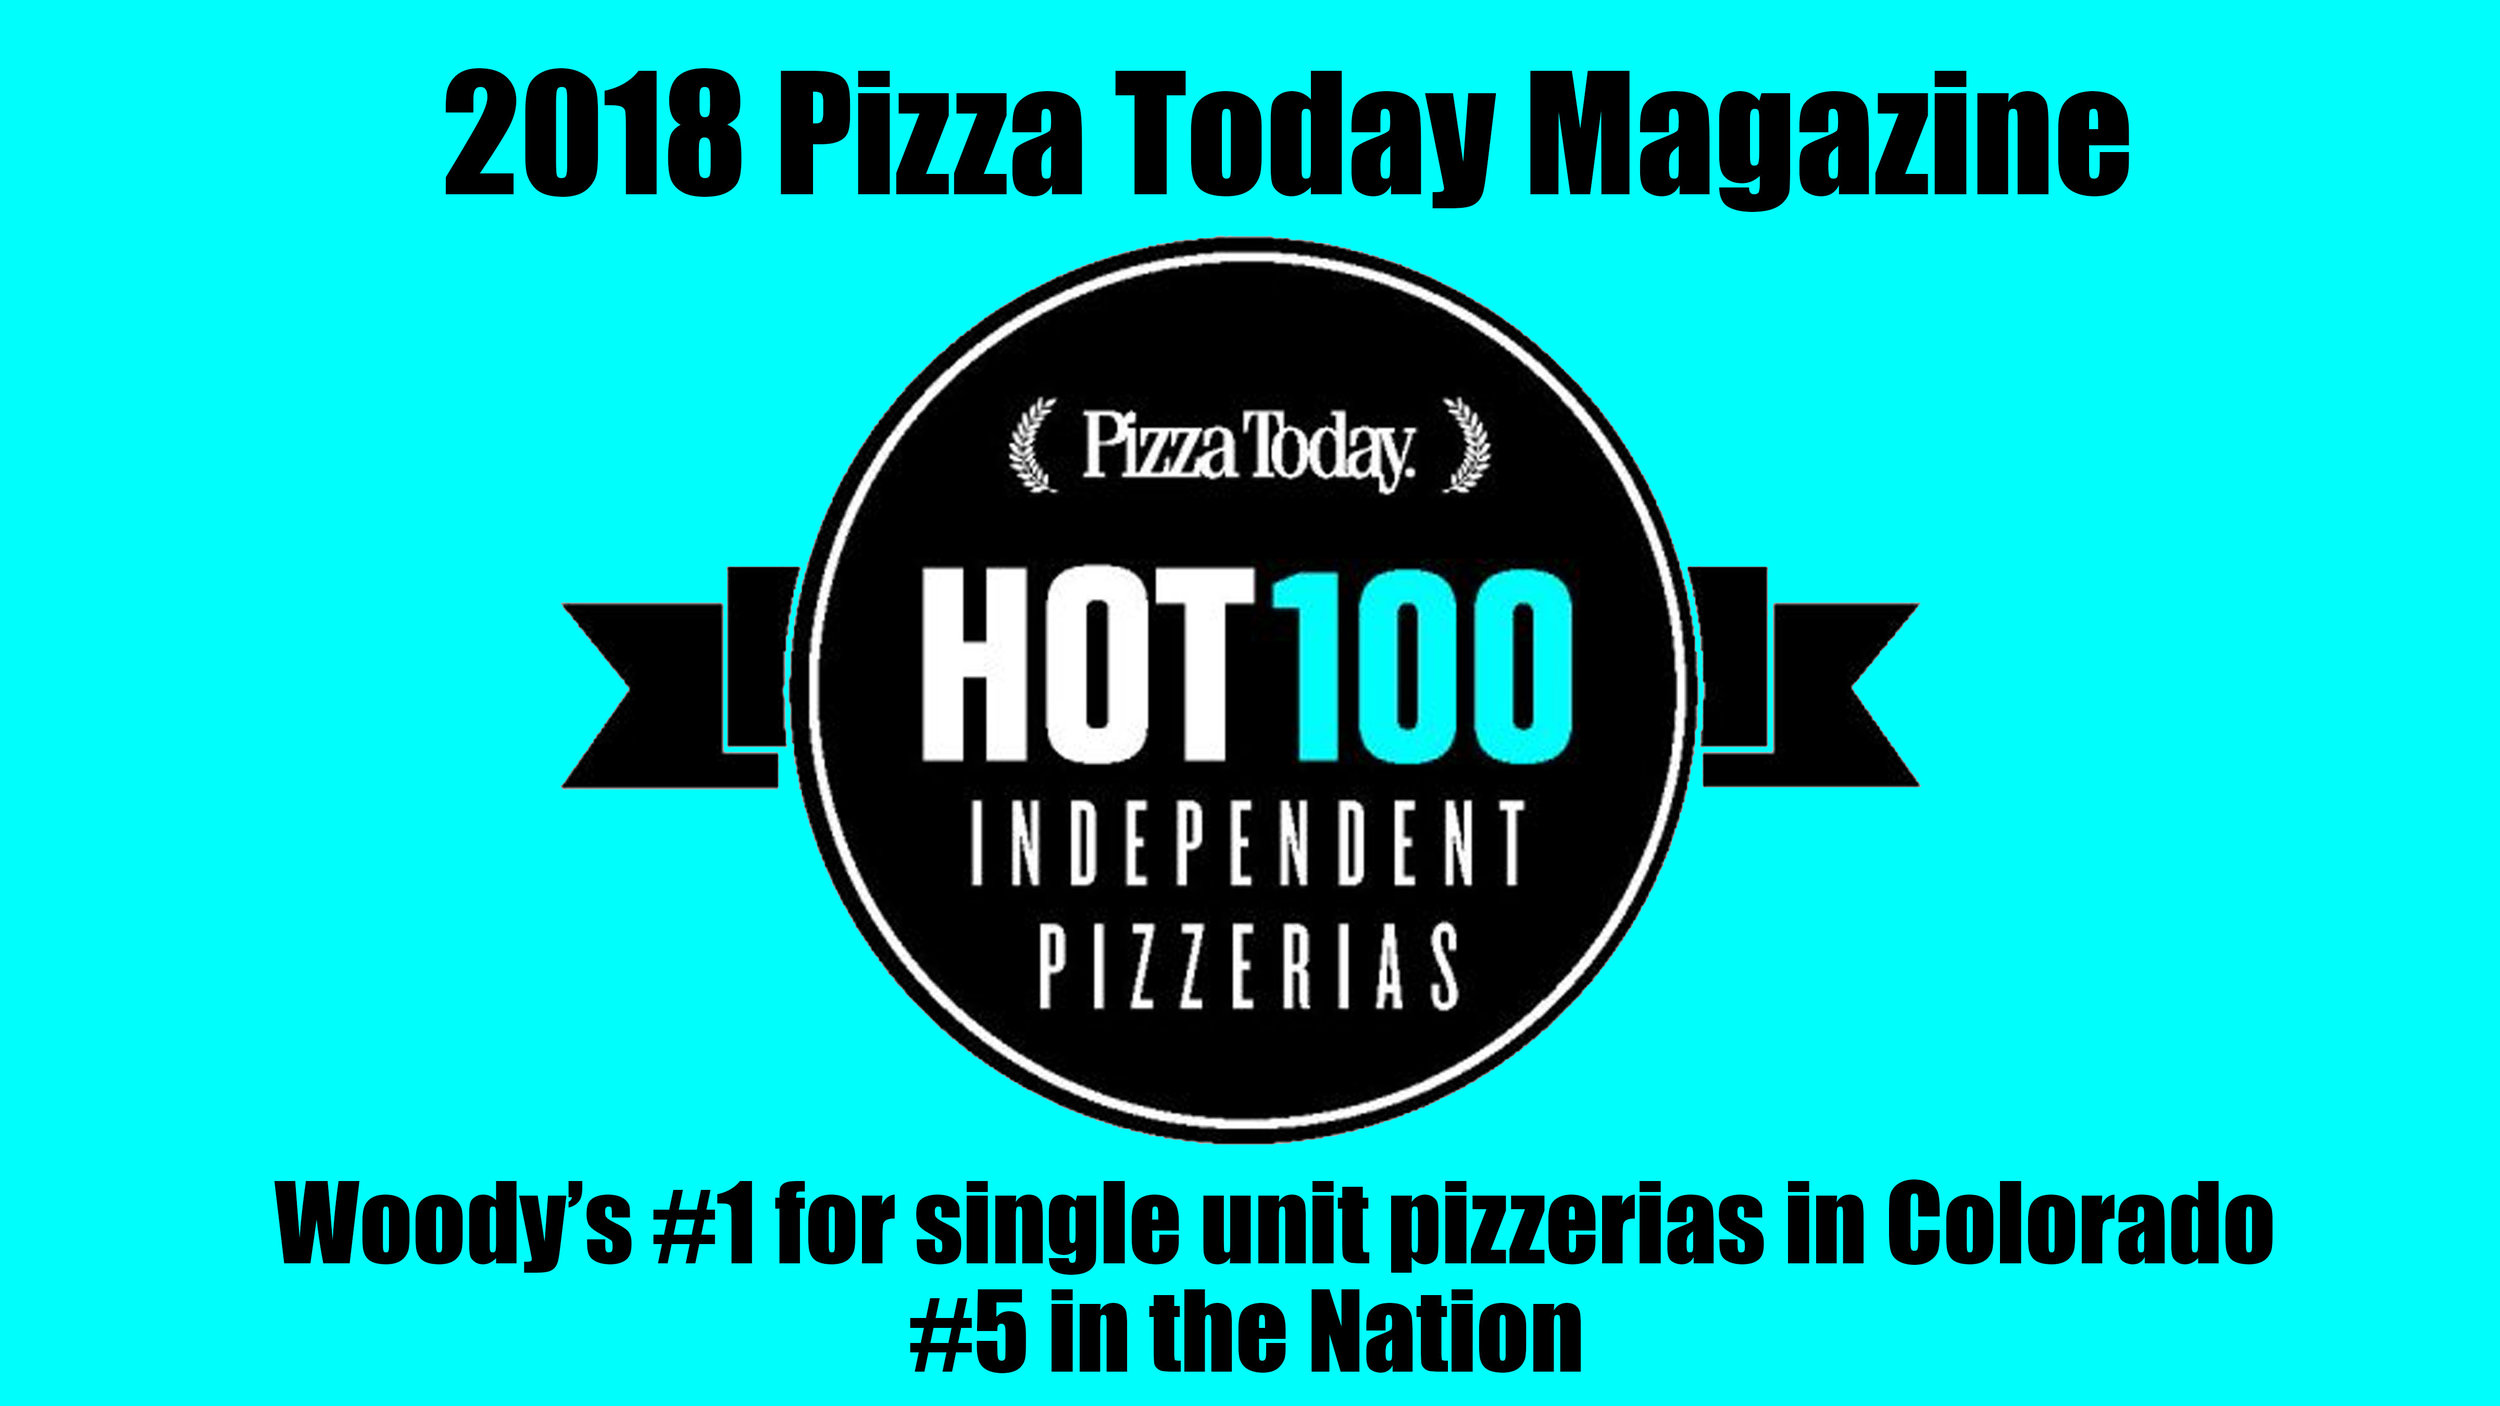 pizzatoday2018.jpg